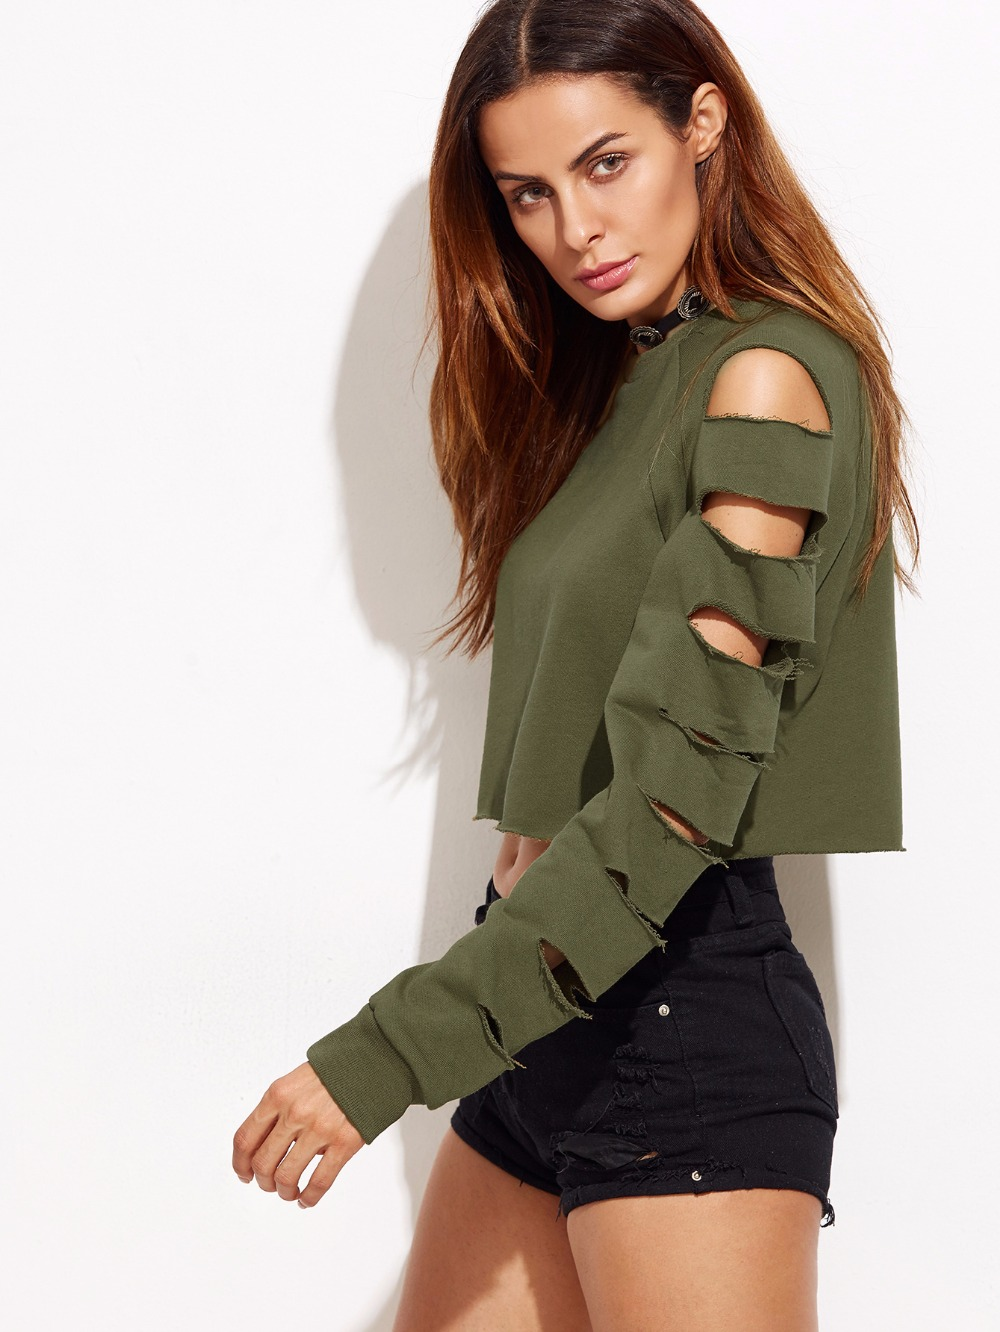 Army-Green-Ladder-Cut-Out-Sleeve-Raw-Hem-Sweatshirt-Women-Sexy-Crop-Tops-Female-Fashion-Clothing (1)